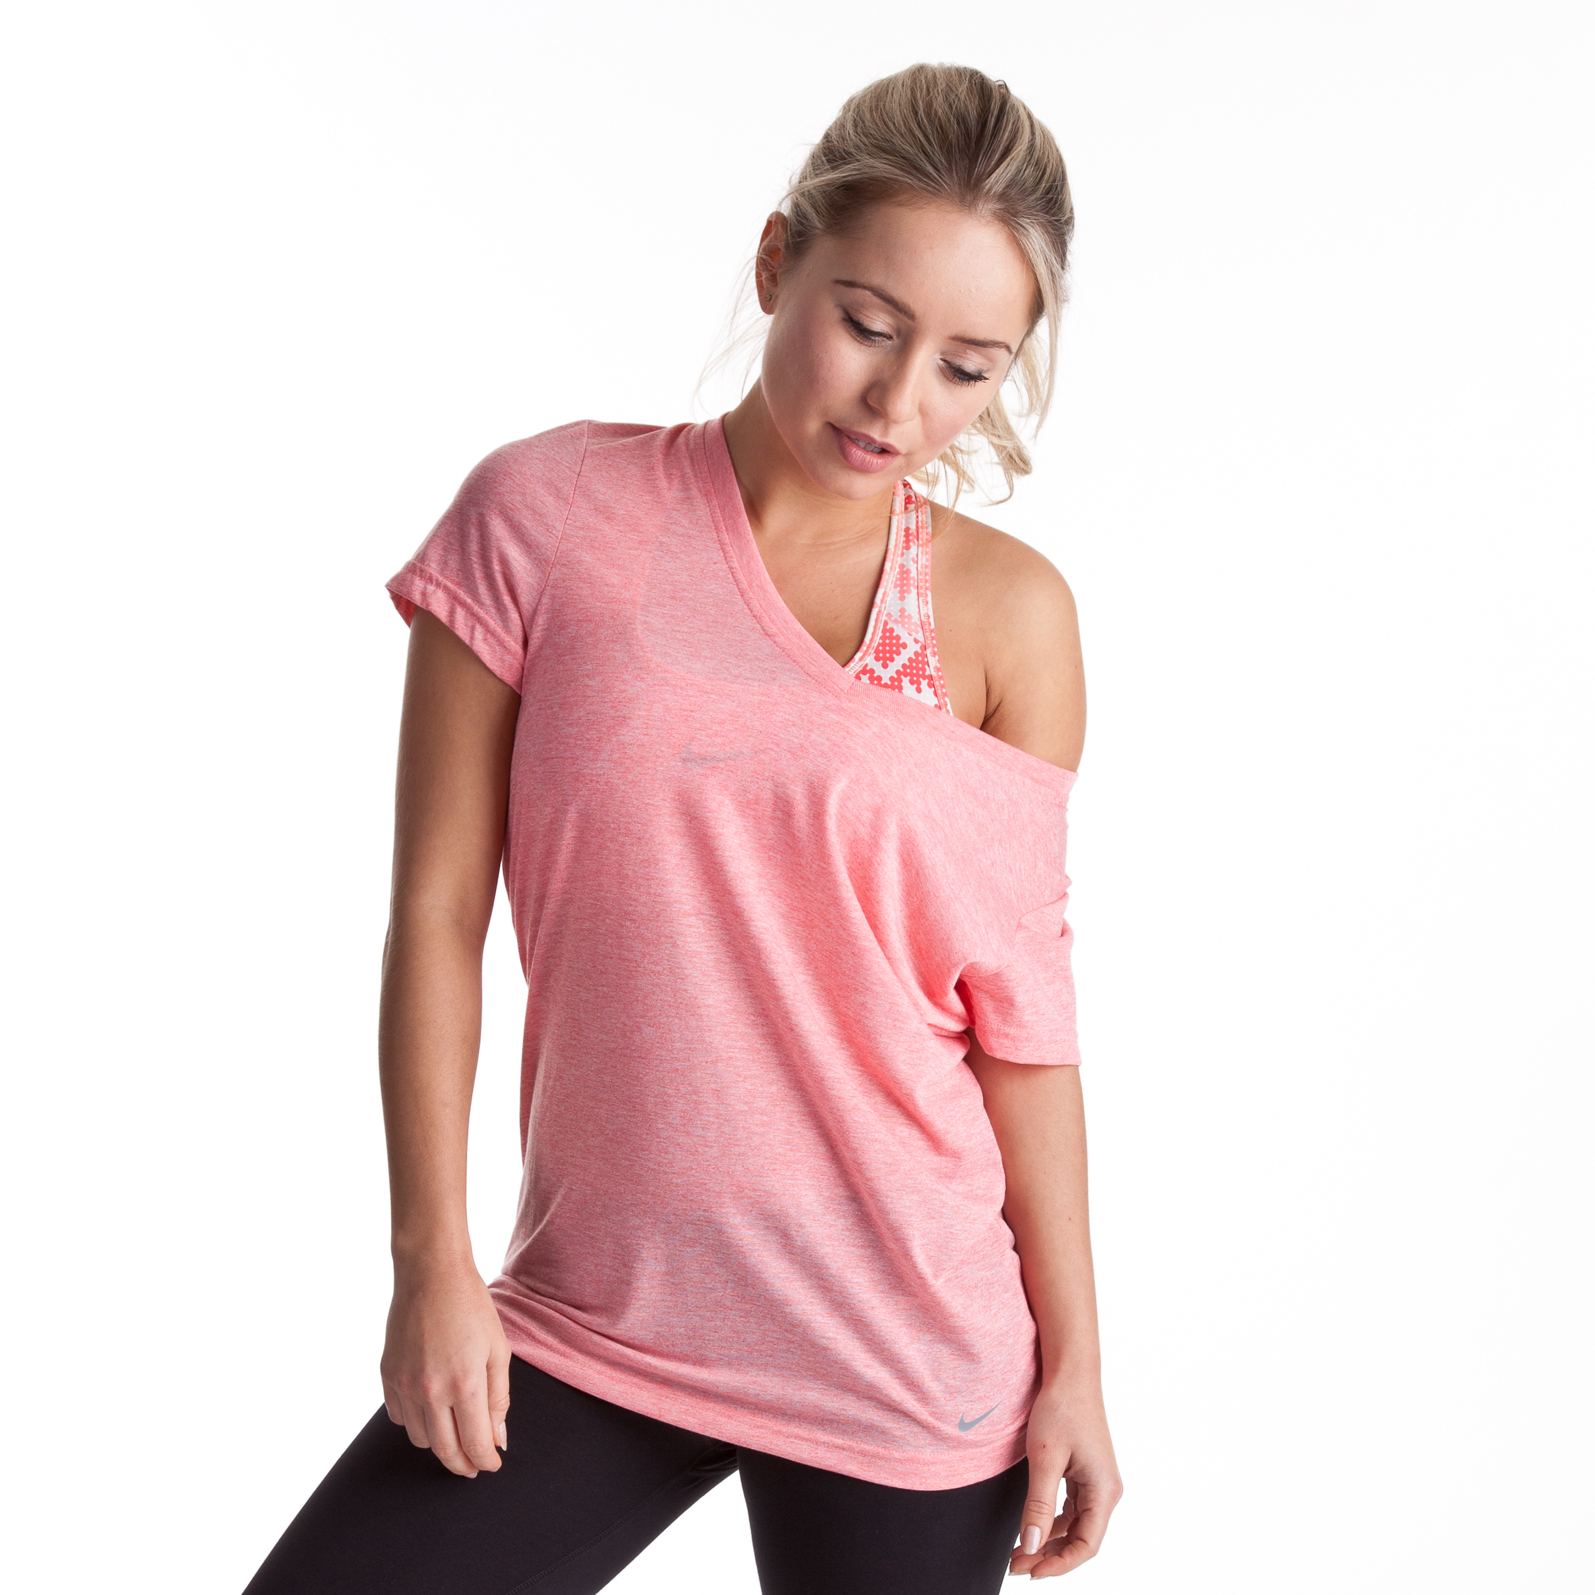 Nike Loose Tri Blend V-Neck T-Shirt - Brt Peach Htr/Cool Grey - Womens